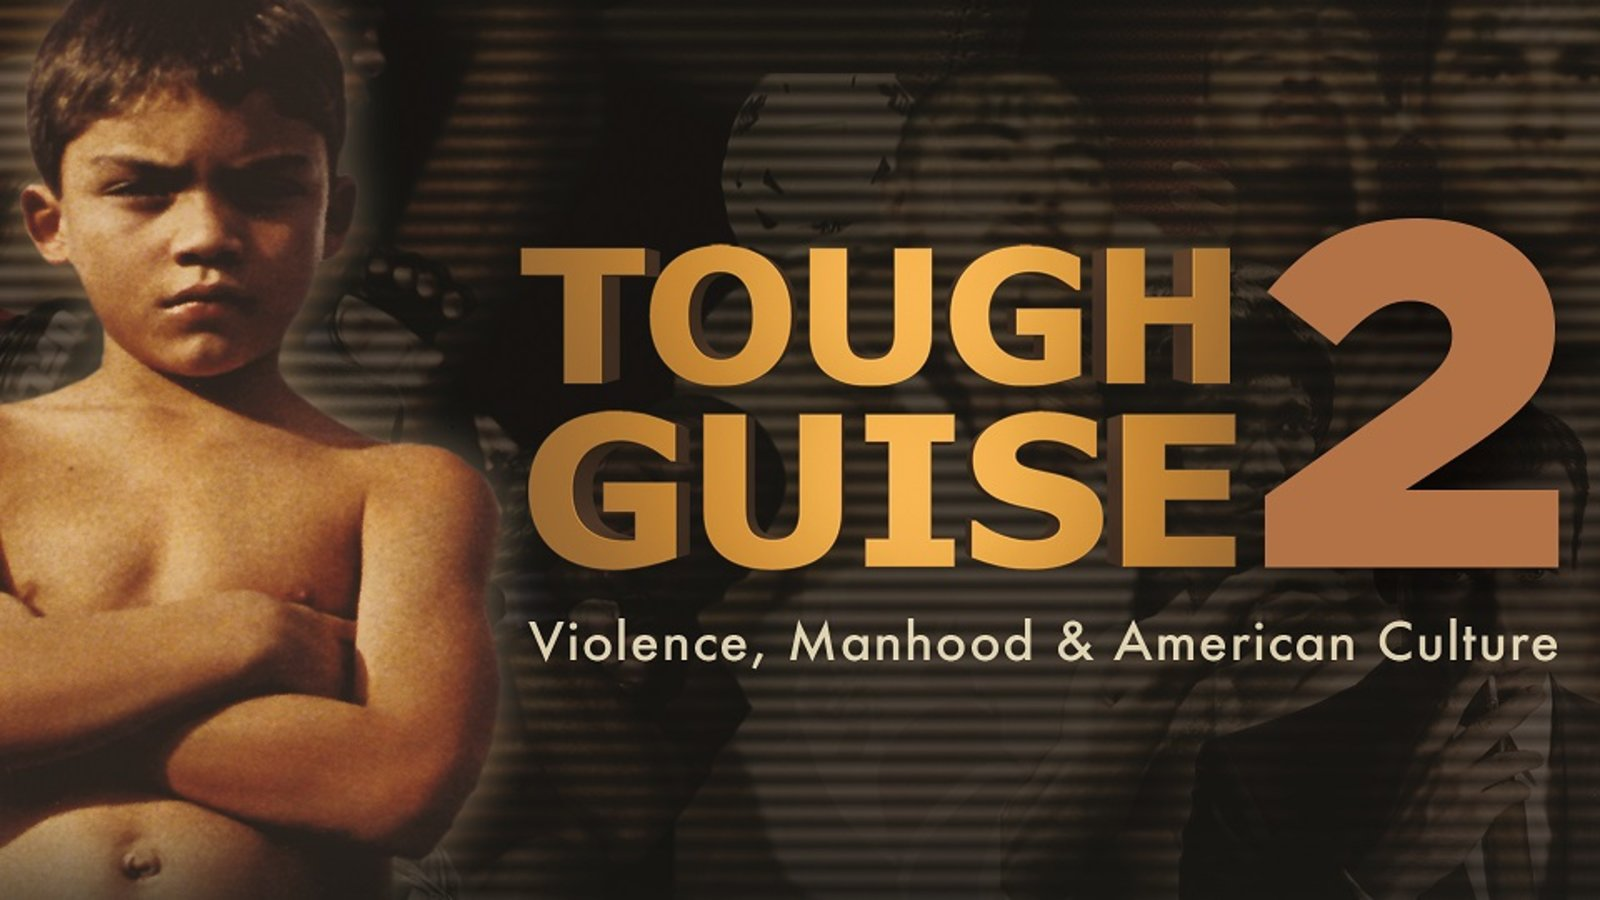 Tough Guise 2 - Violence, Manhood & American Culture